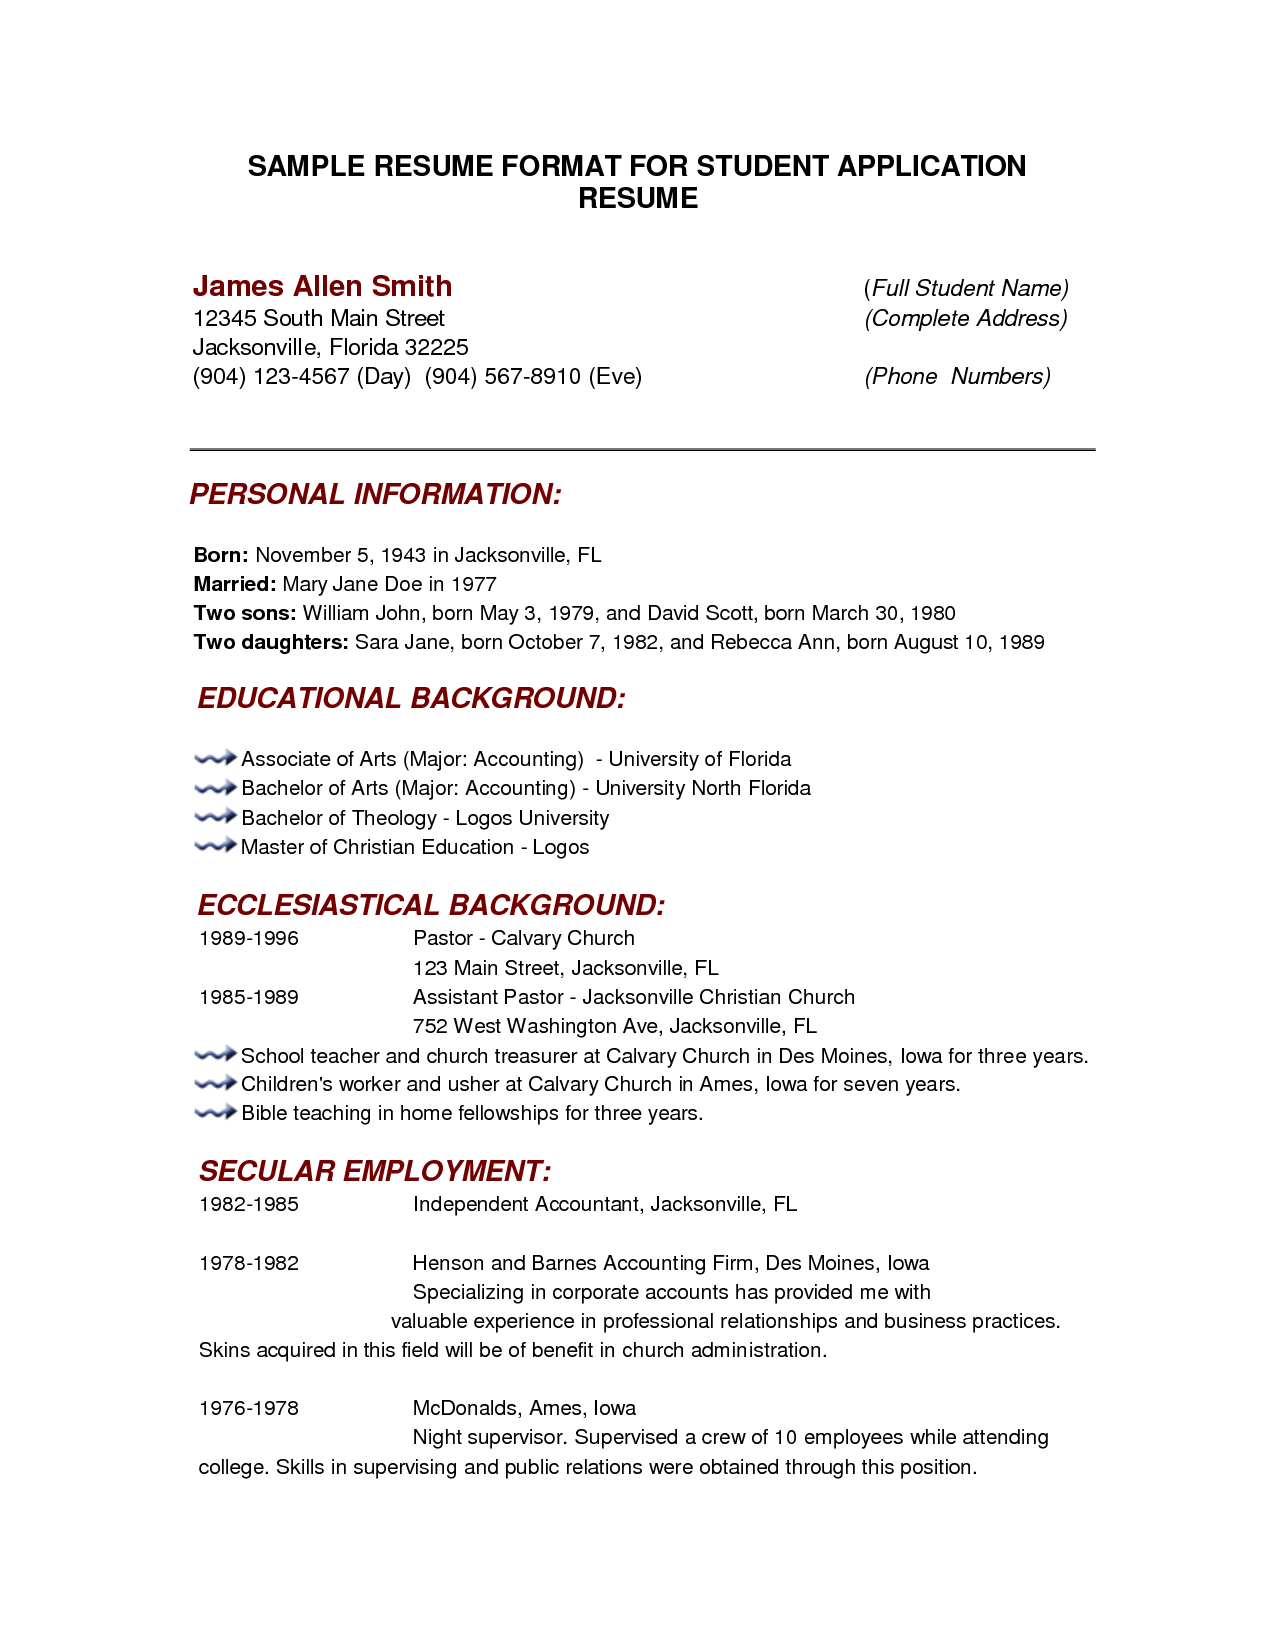 Merveilleux Resume Template For College Students   Http://www.resumecareer.info/